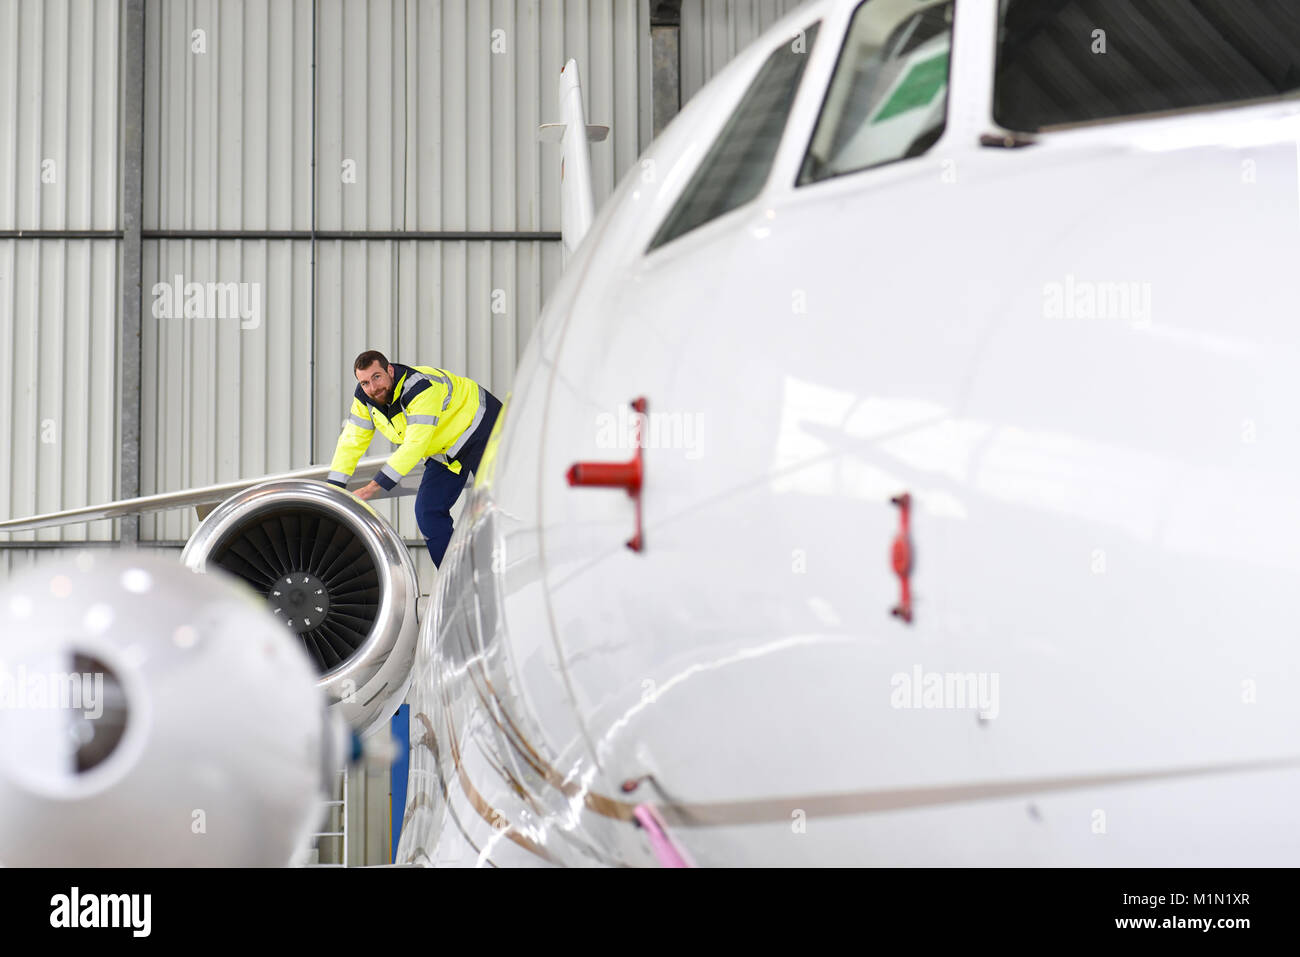 Airport workers check an aircraft for safety in a hangar - Stock Image